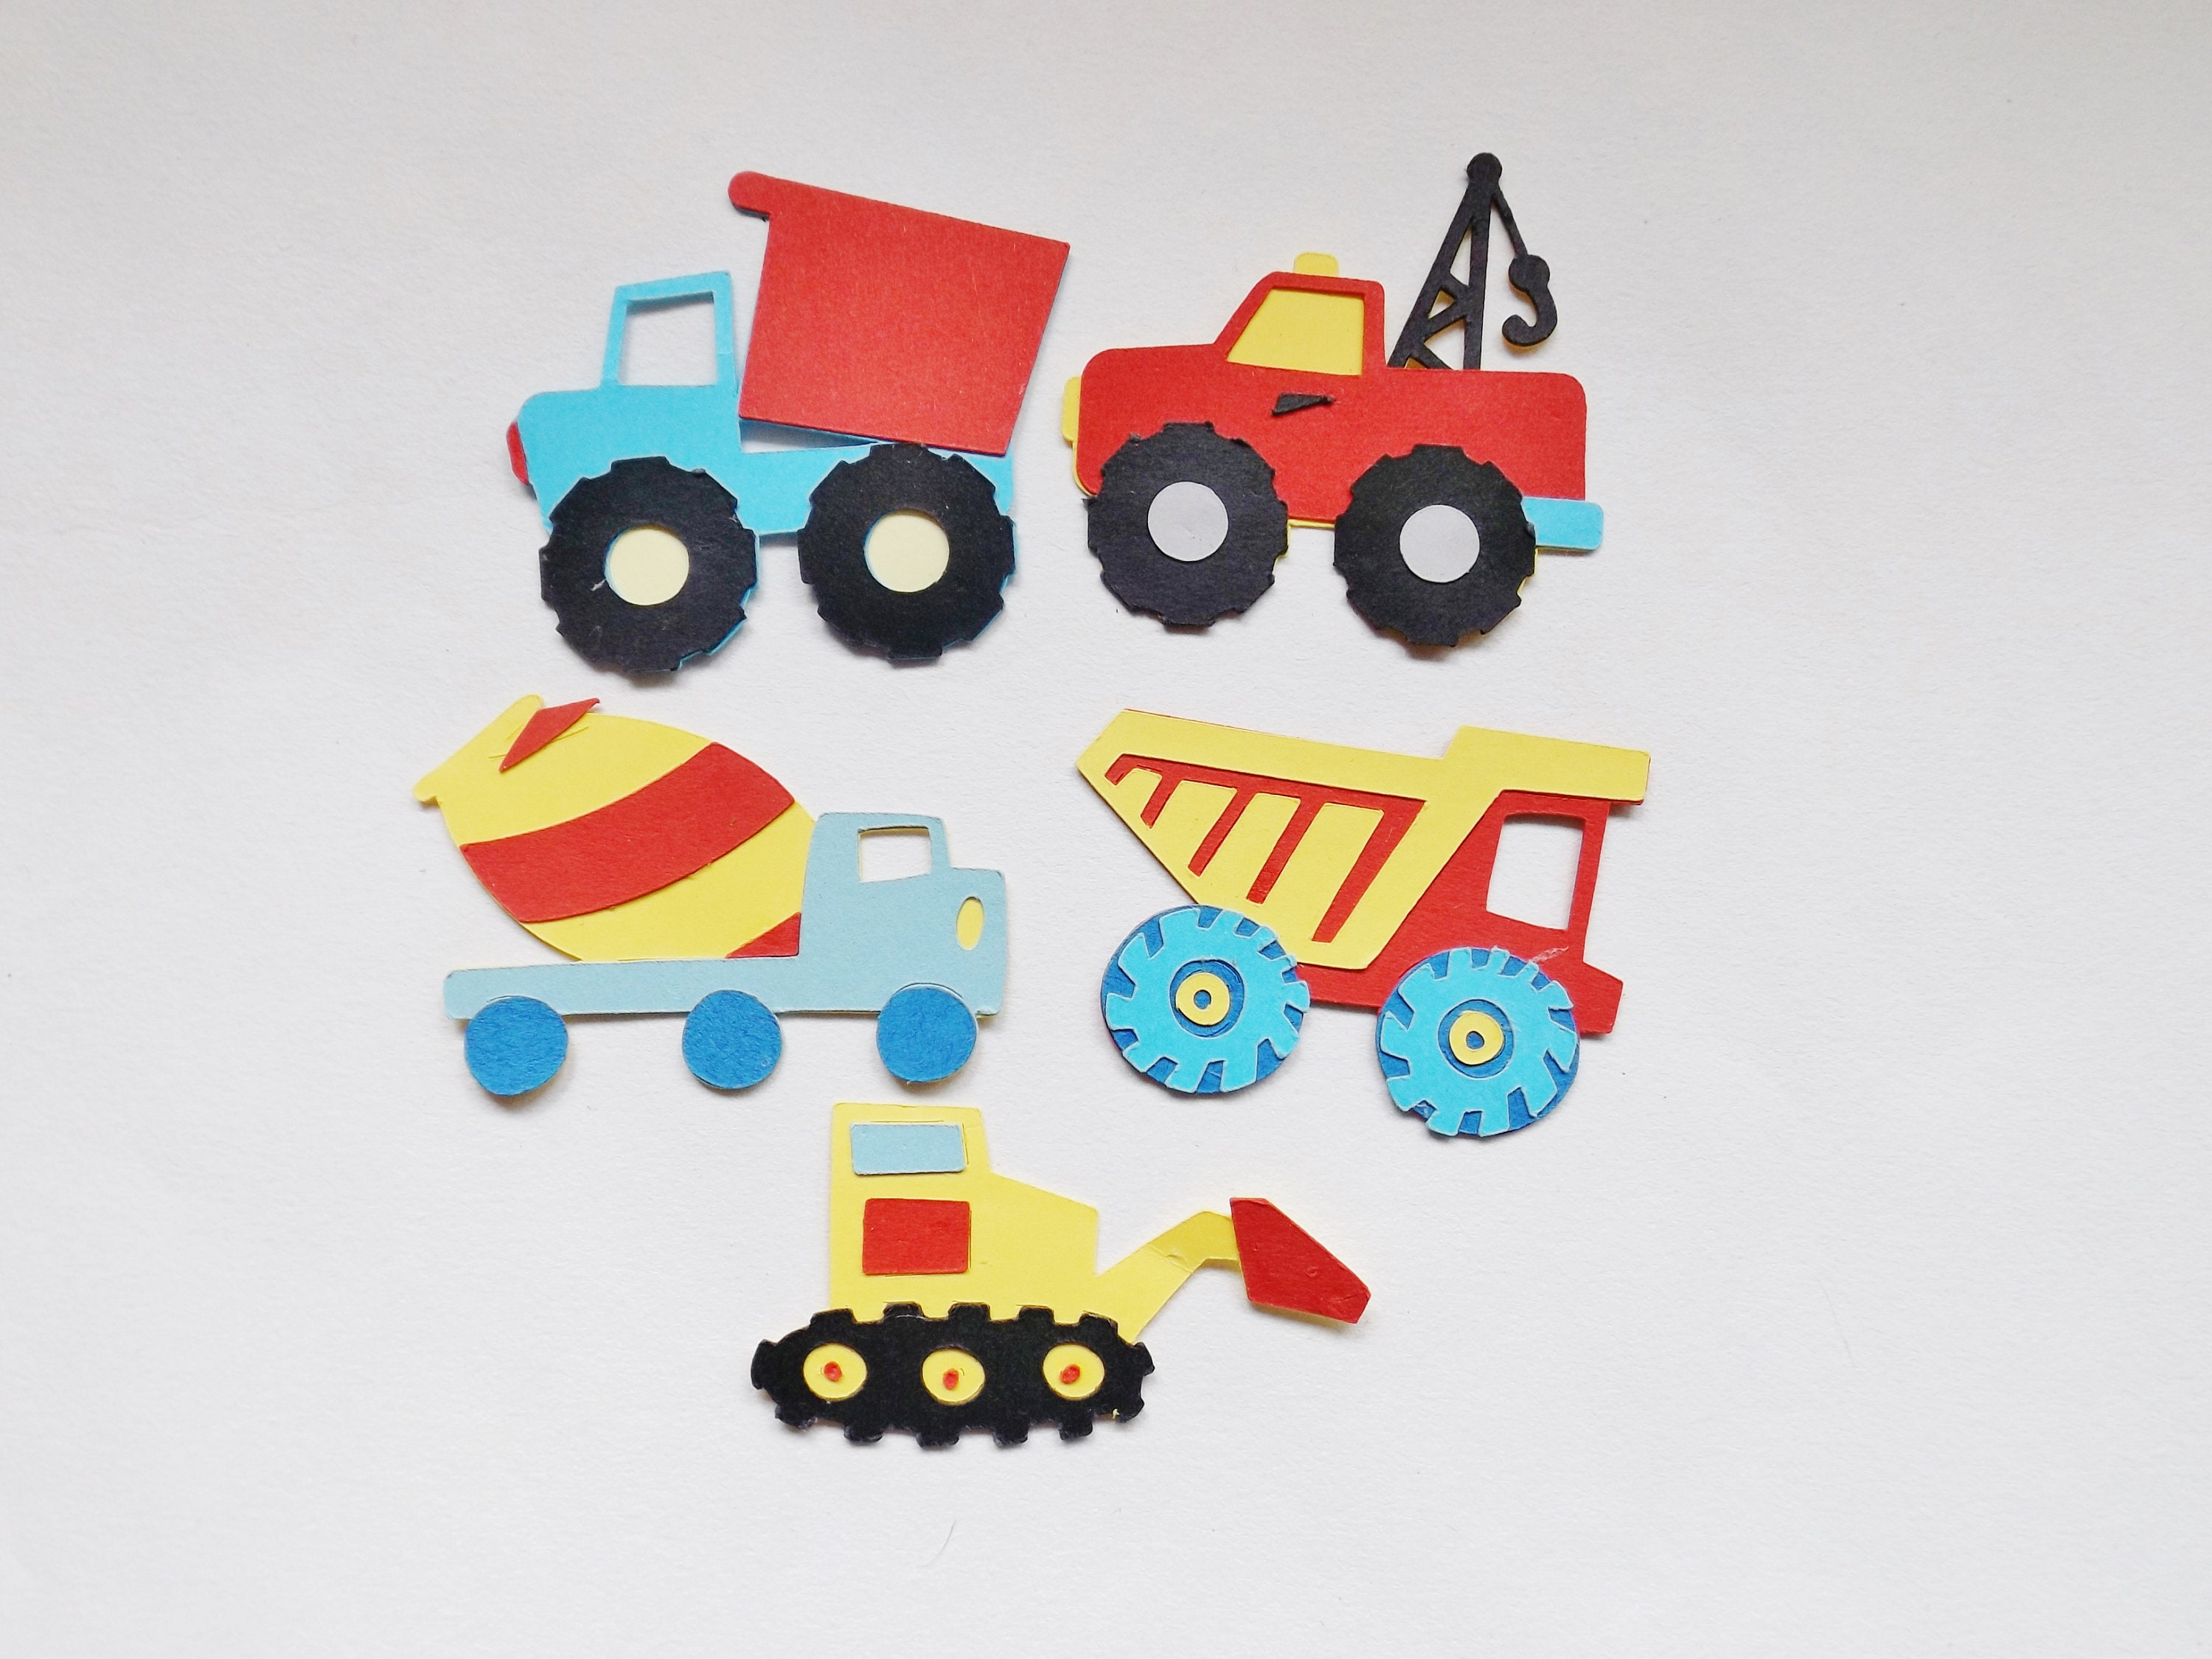 Childrens crafts Cardmaking Wooden Trucks and Diggers x 12 per pack